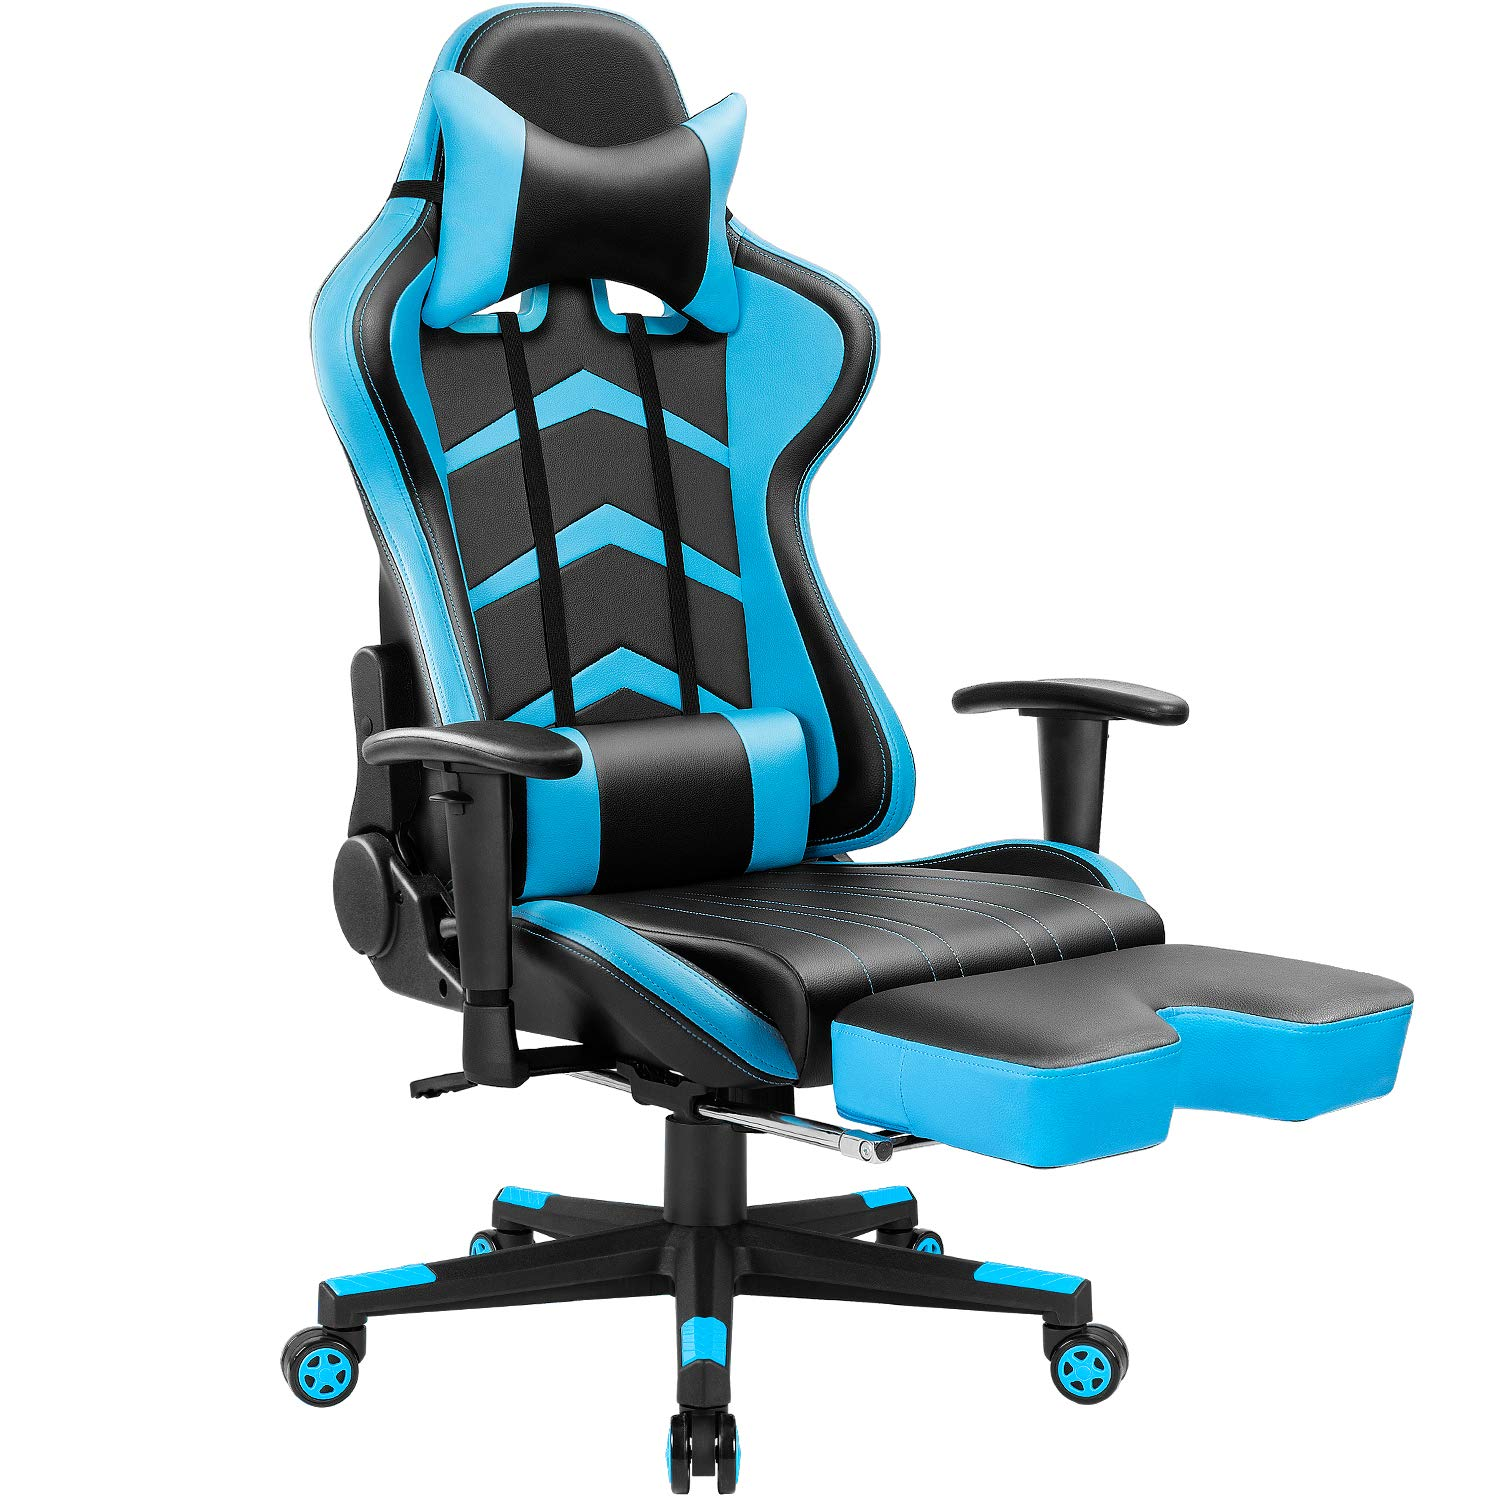 Furmax Gaming Chair High Back Office Racing Chair,Ergonomic Swivel Computer Chair Executive Leather Desk Chair with Footrest, Bucket Seat and Lumbar Support (Blue) by Furmax